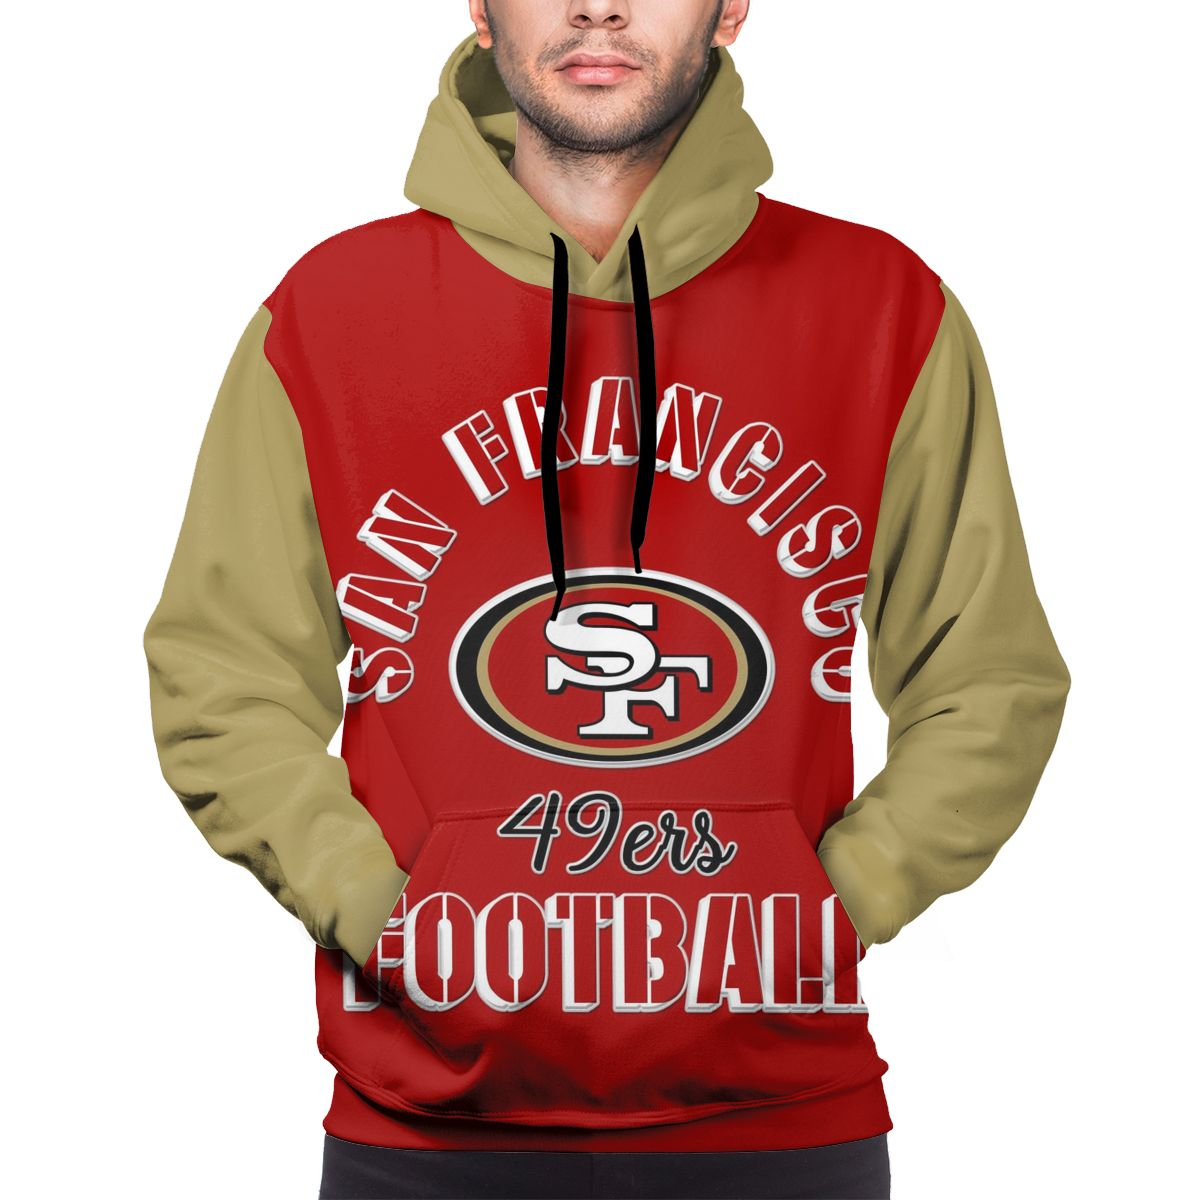 49ers Football Team Customize Hoodies For Men Pullover Sweatshirt